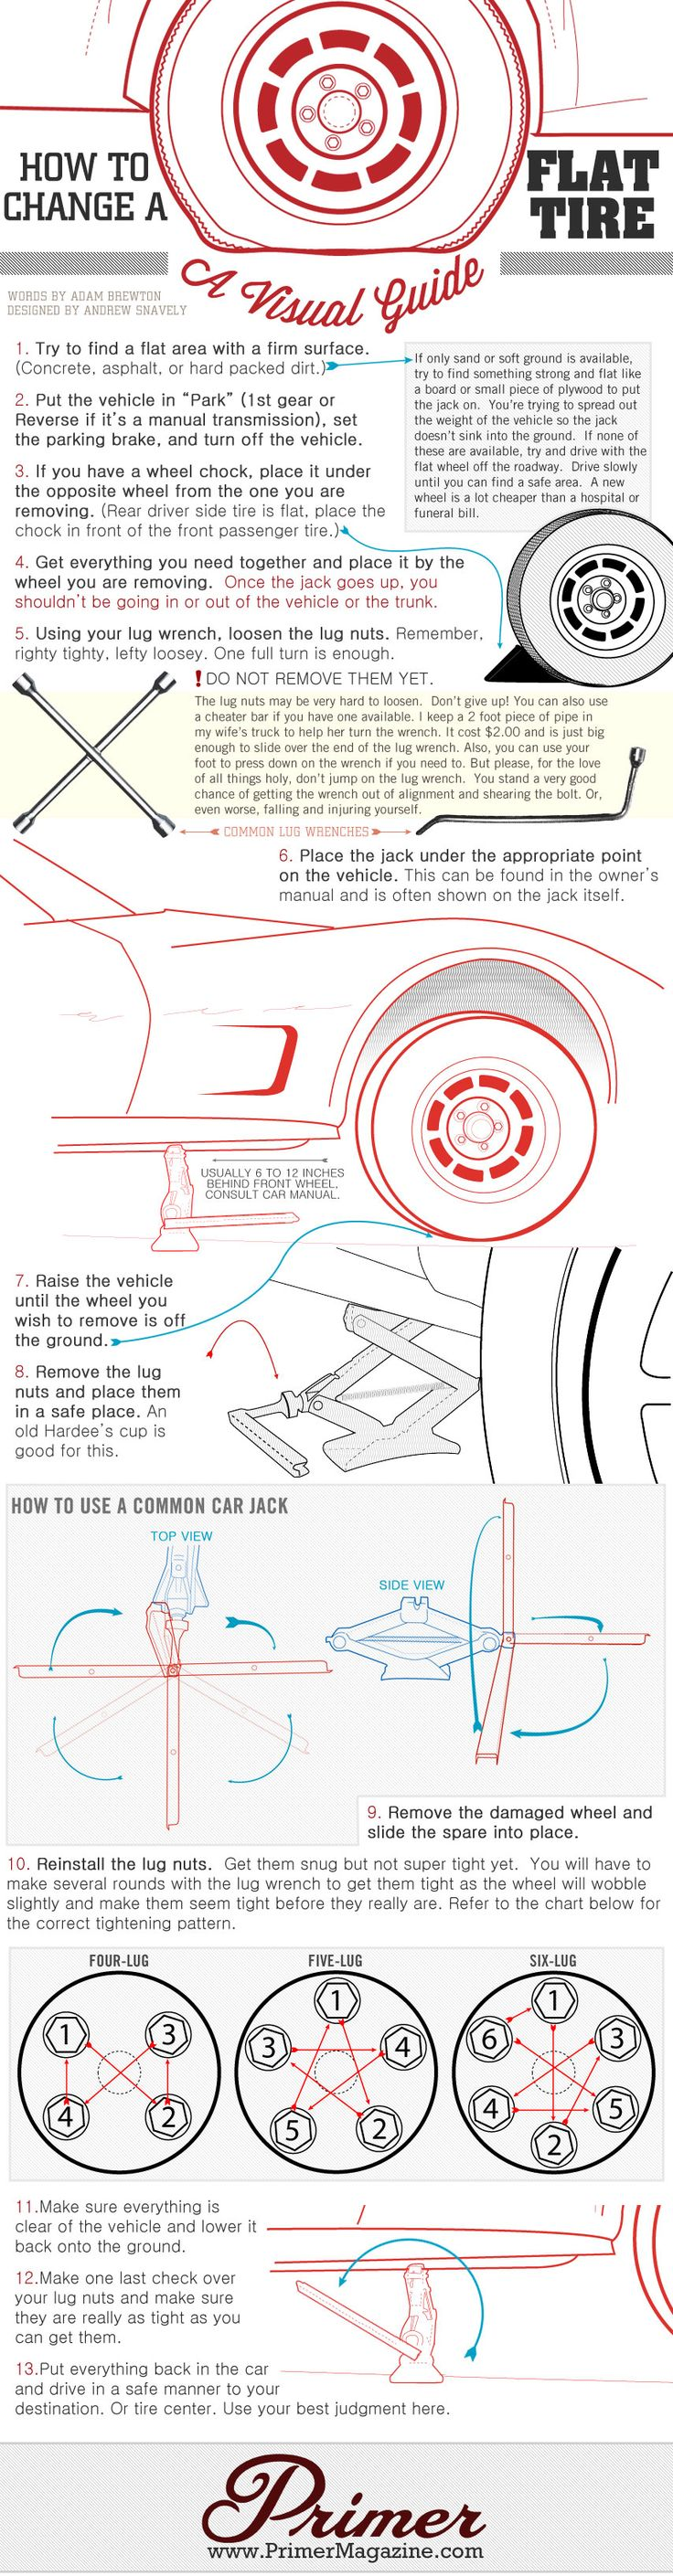 How to Change a Flat Tire: Visual Guide-yes, a properly running car is a fabulous accessory.